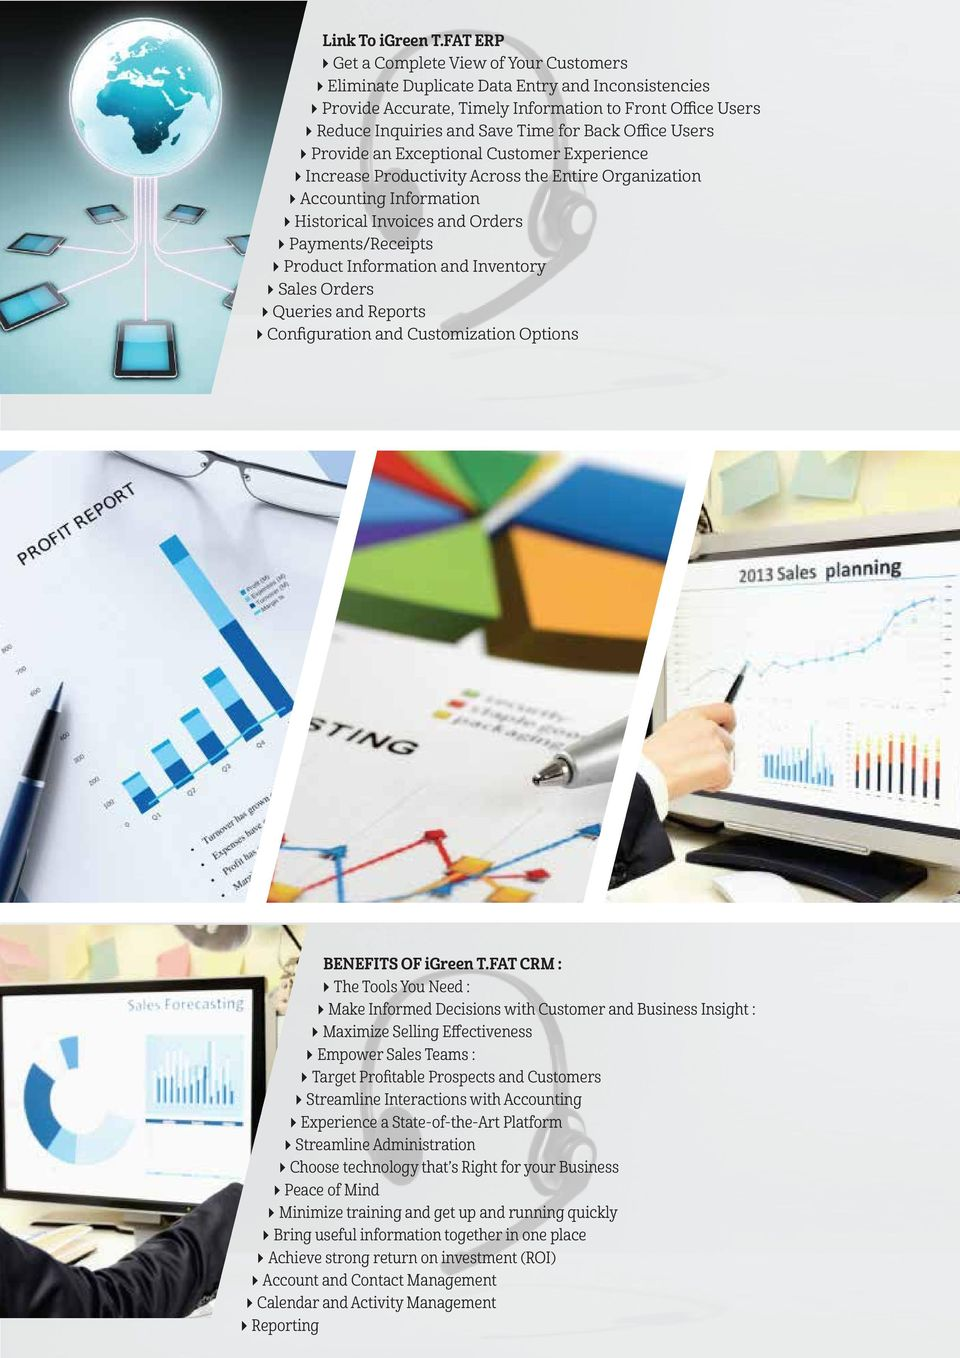 Office Users Provide an Exceptional Customer Experience Increase Productivity Across the Entire Organization Accounting Information Historical Invoices and Orders Payments/Receipts Product